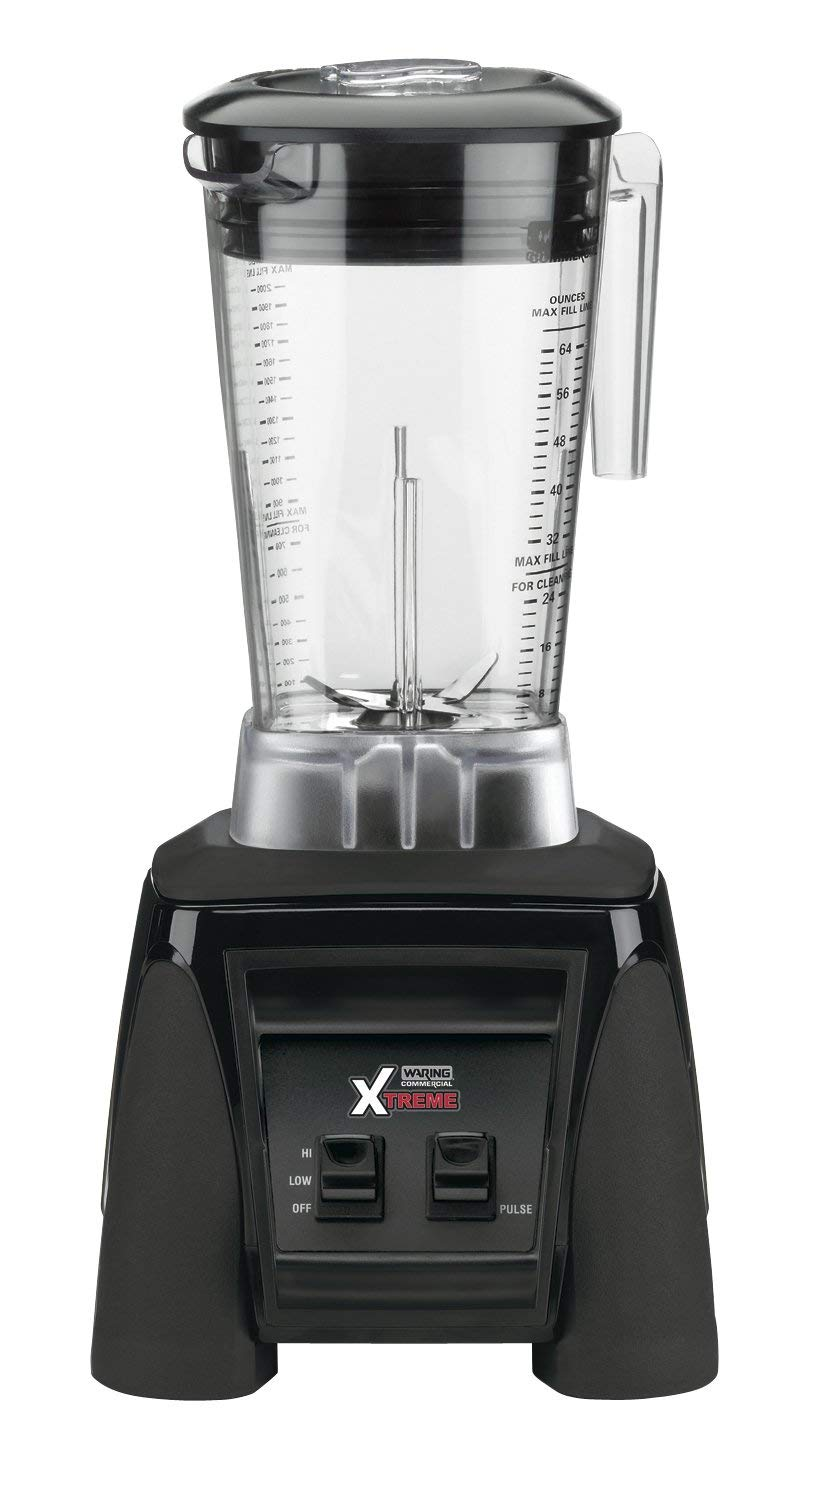 Waring (MX1000XTX) 64 oz Commercial Blender - Xtreme Hi-Power Series - JrcNYC